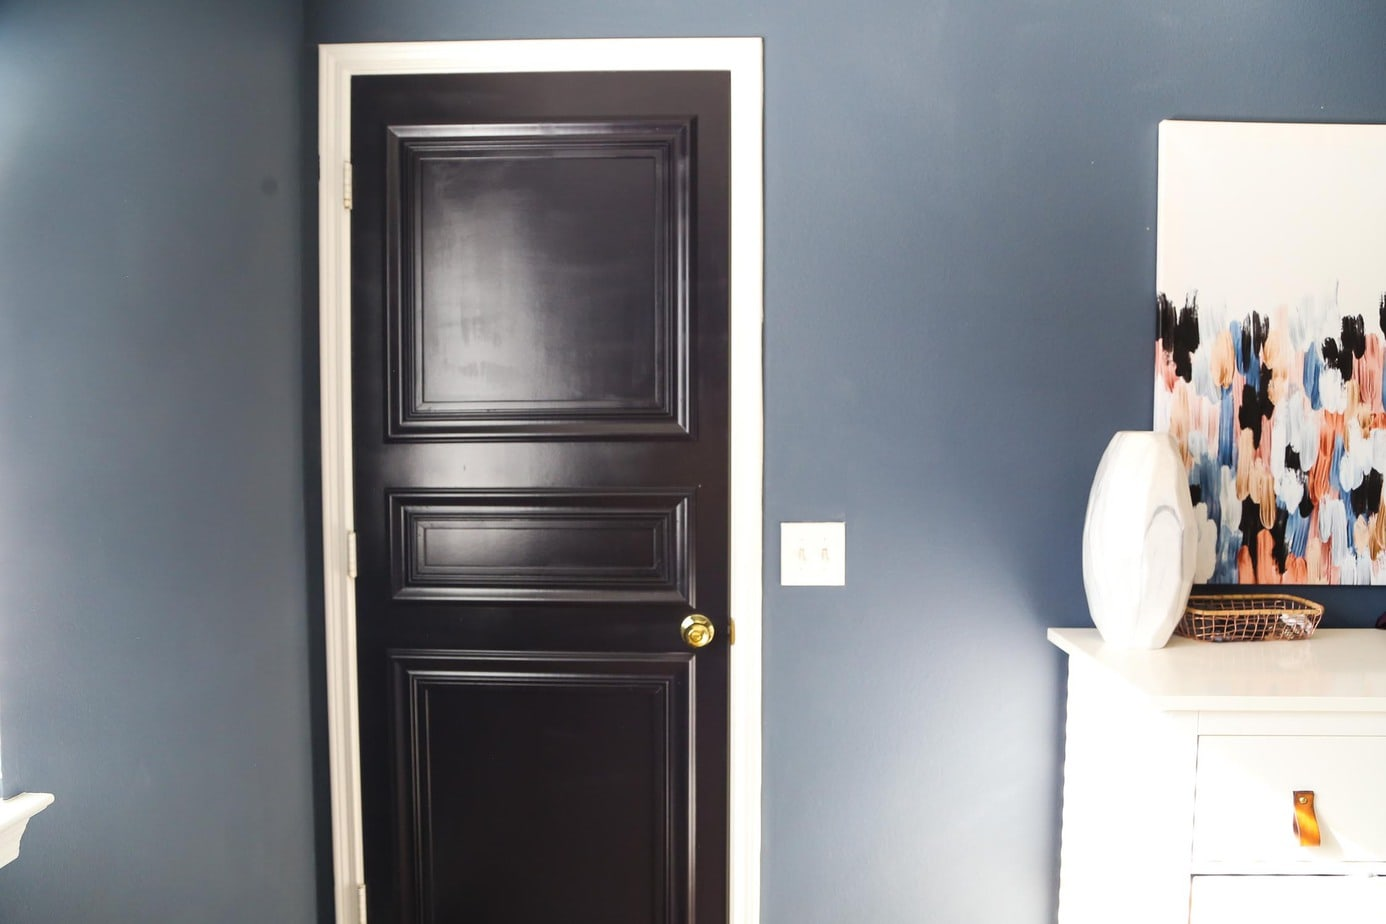 DIY paneled door tutorial